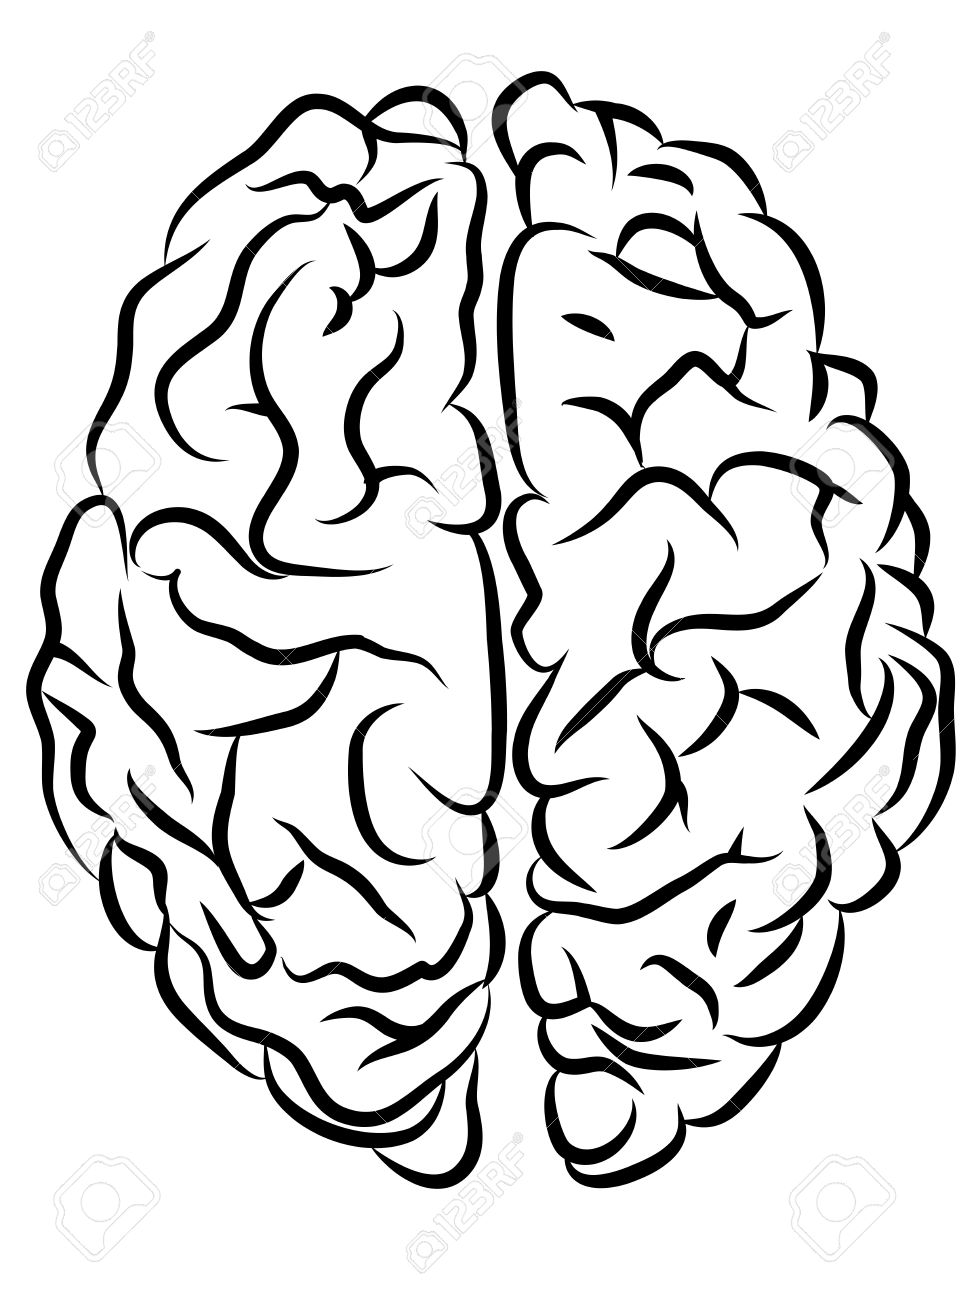 974x1300 Vector Black And White Brain Contours, Cartoon Style Royalty Free